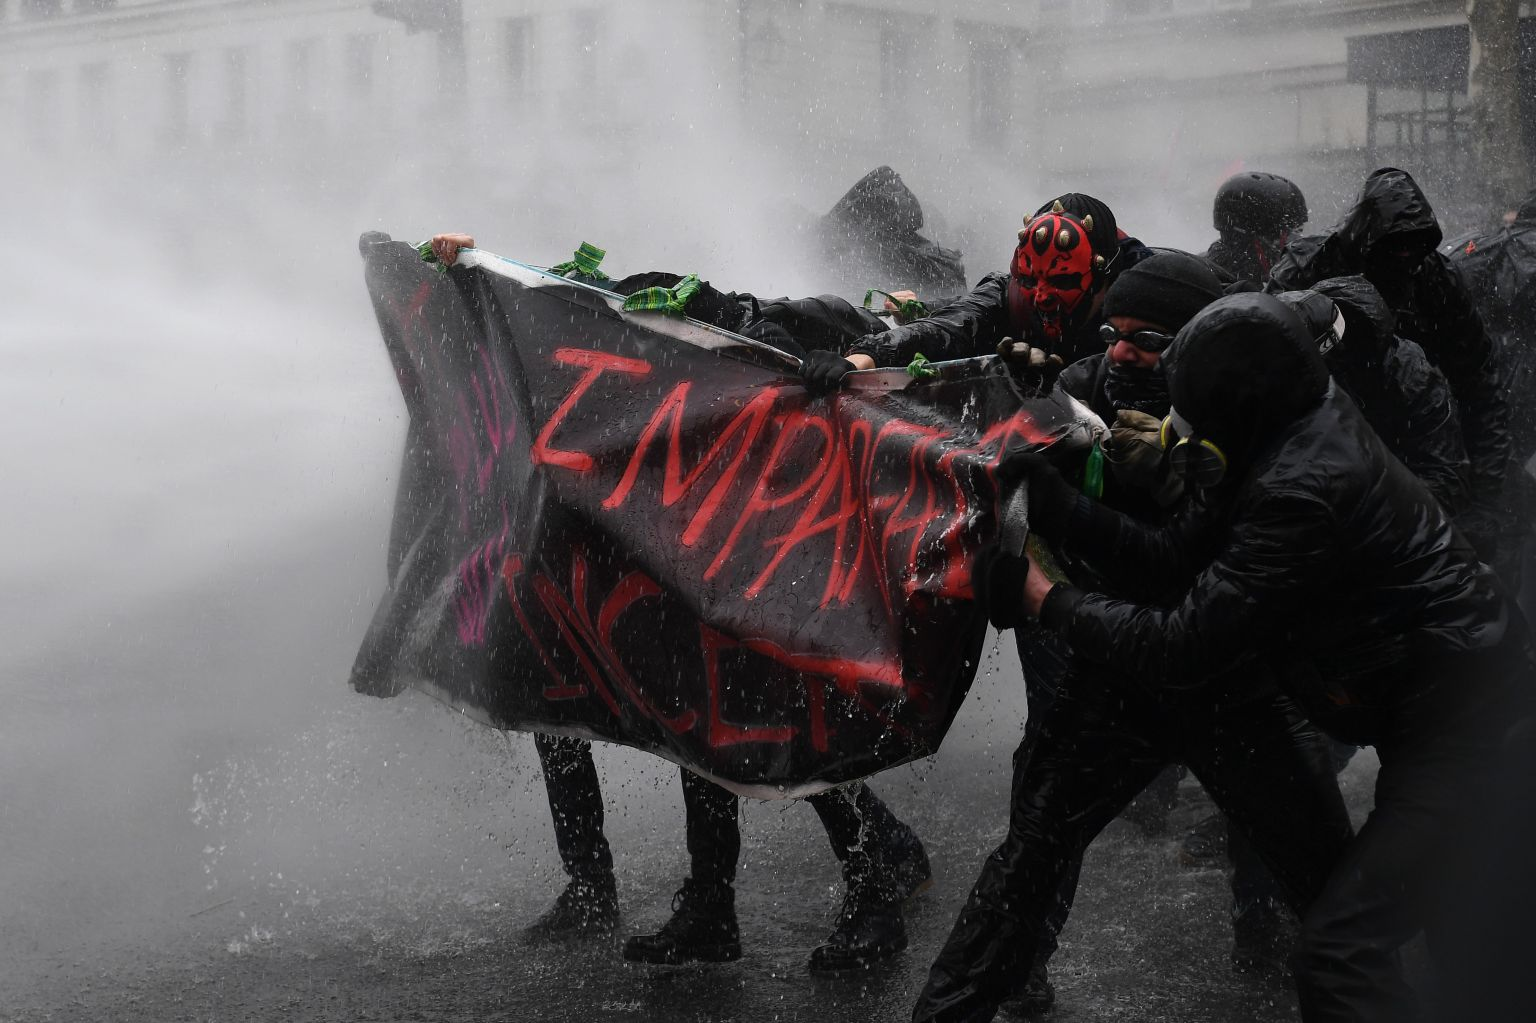 TOPSHOT - Police uses a water canon against demonstrators during a protest against French government's string of reforms, on March 22, 2018 in Paris. Seven trade unions have called on public sector workers to strike on March 22, including school and hospital staff, civil servants and air traffic controllers. More than 140 protests are planned across France, the biggest culminating at the Bastille monument in Paris where unions expect 25,000 demonstrators.  / AFP PHOTO / CHRISTOPHE ARCHAMBAULT        (Photo credit should read CHRISTOPHE ARCHAMBAULT/AFP/Getty Images)